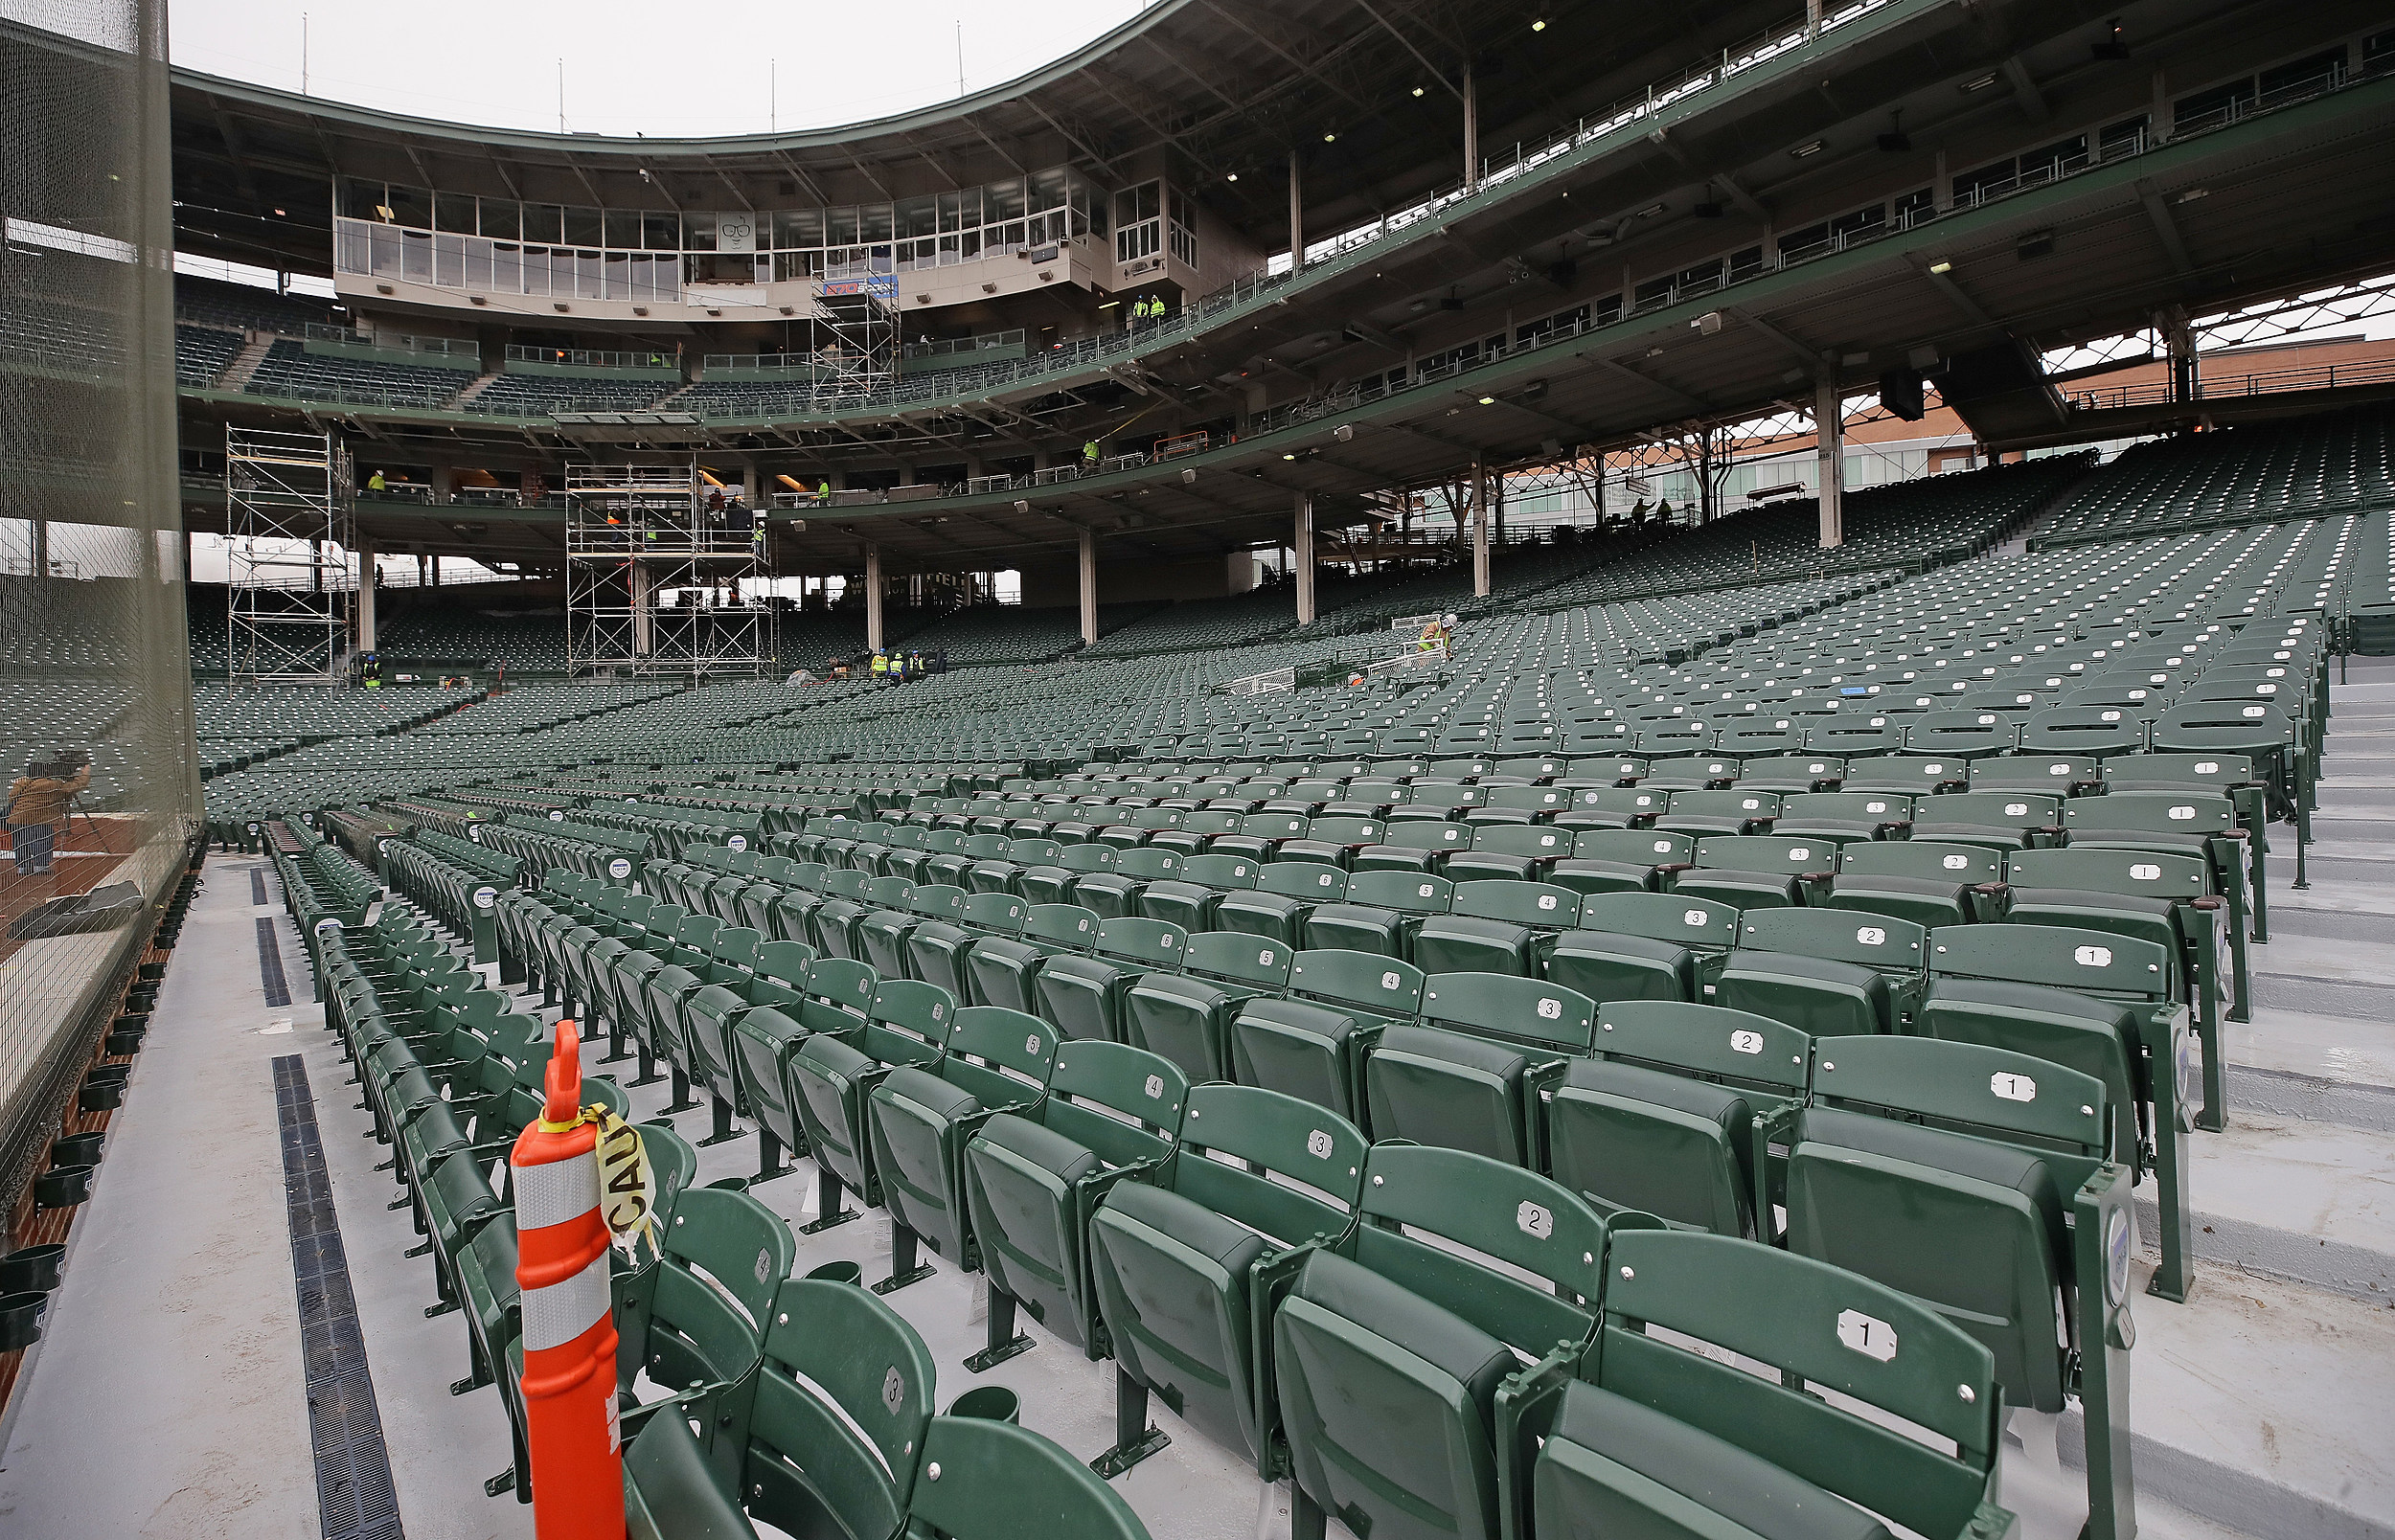 The New Seats Are Wrigley Field Are Too Small